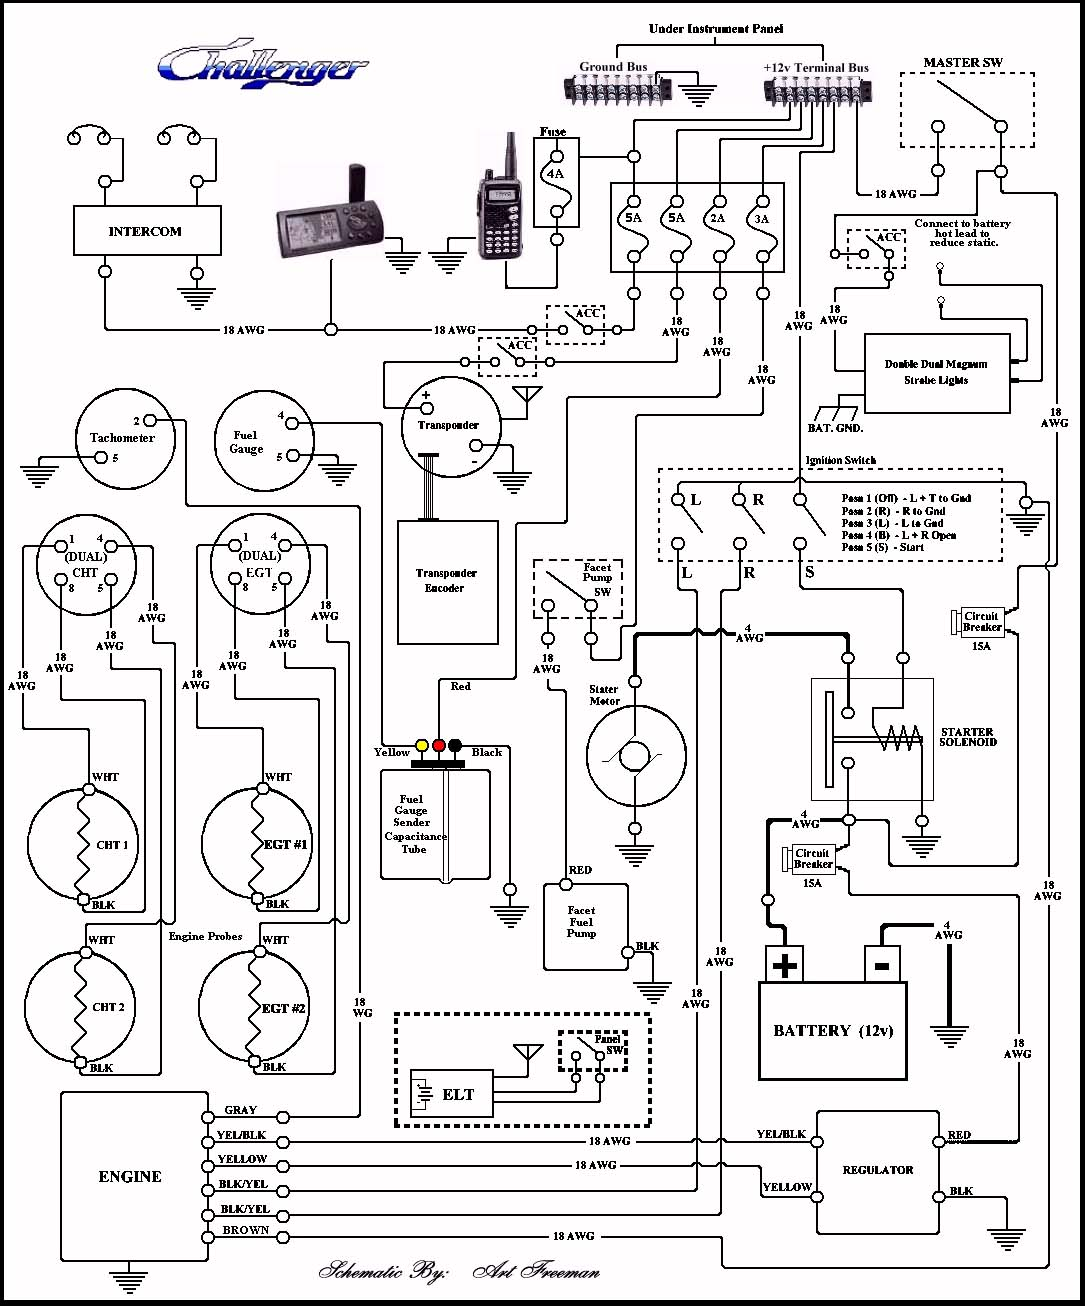 Basic Wiring Of Fuselage Instruments And Power Source Electrical Fuse Panel Diagram Pole 3 We Recommend You Download The Following Schematic